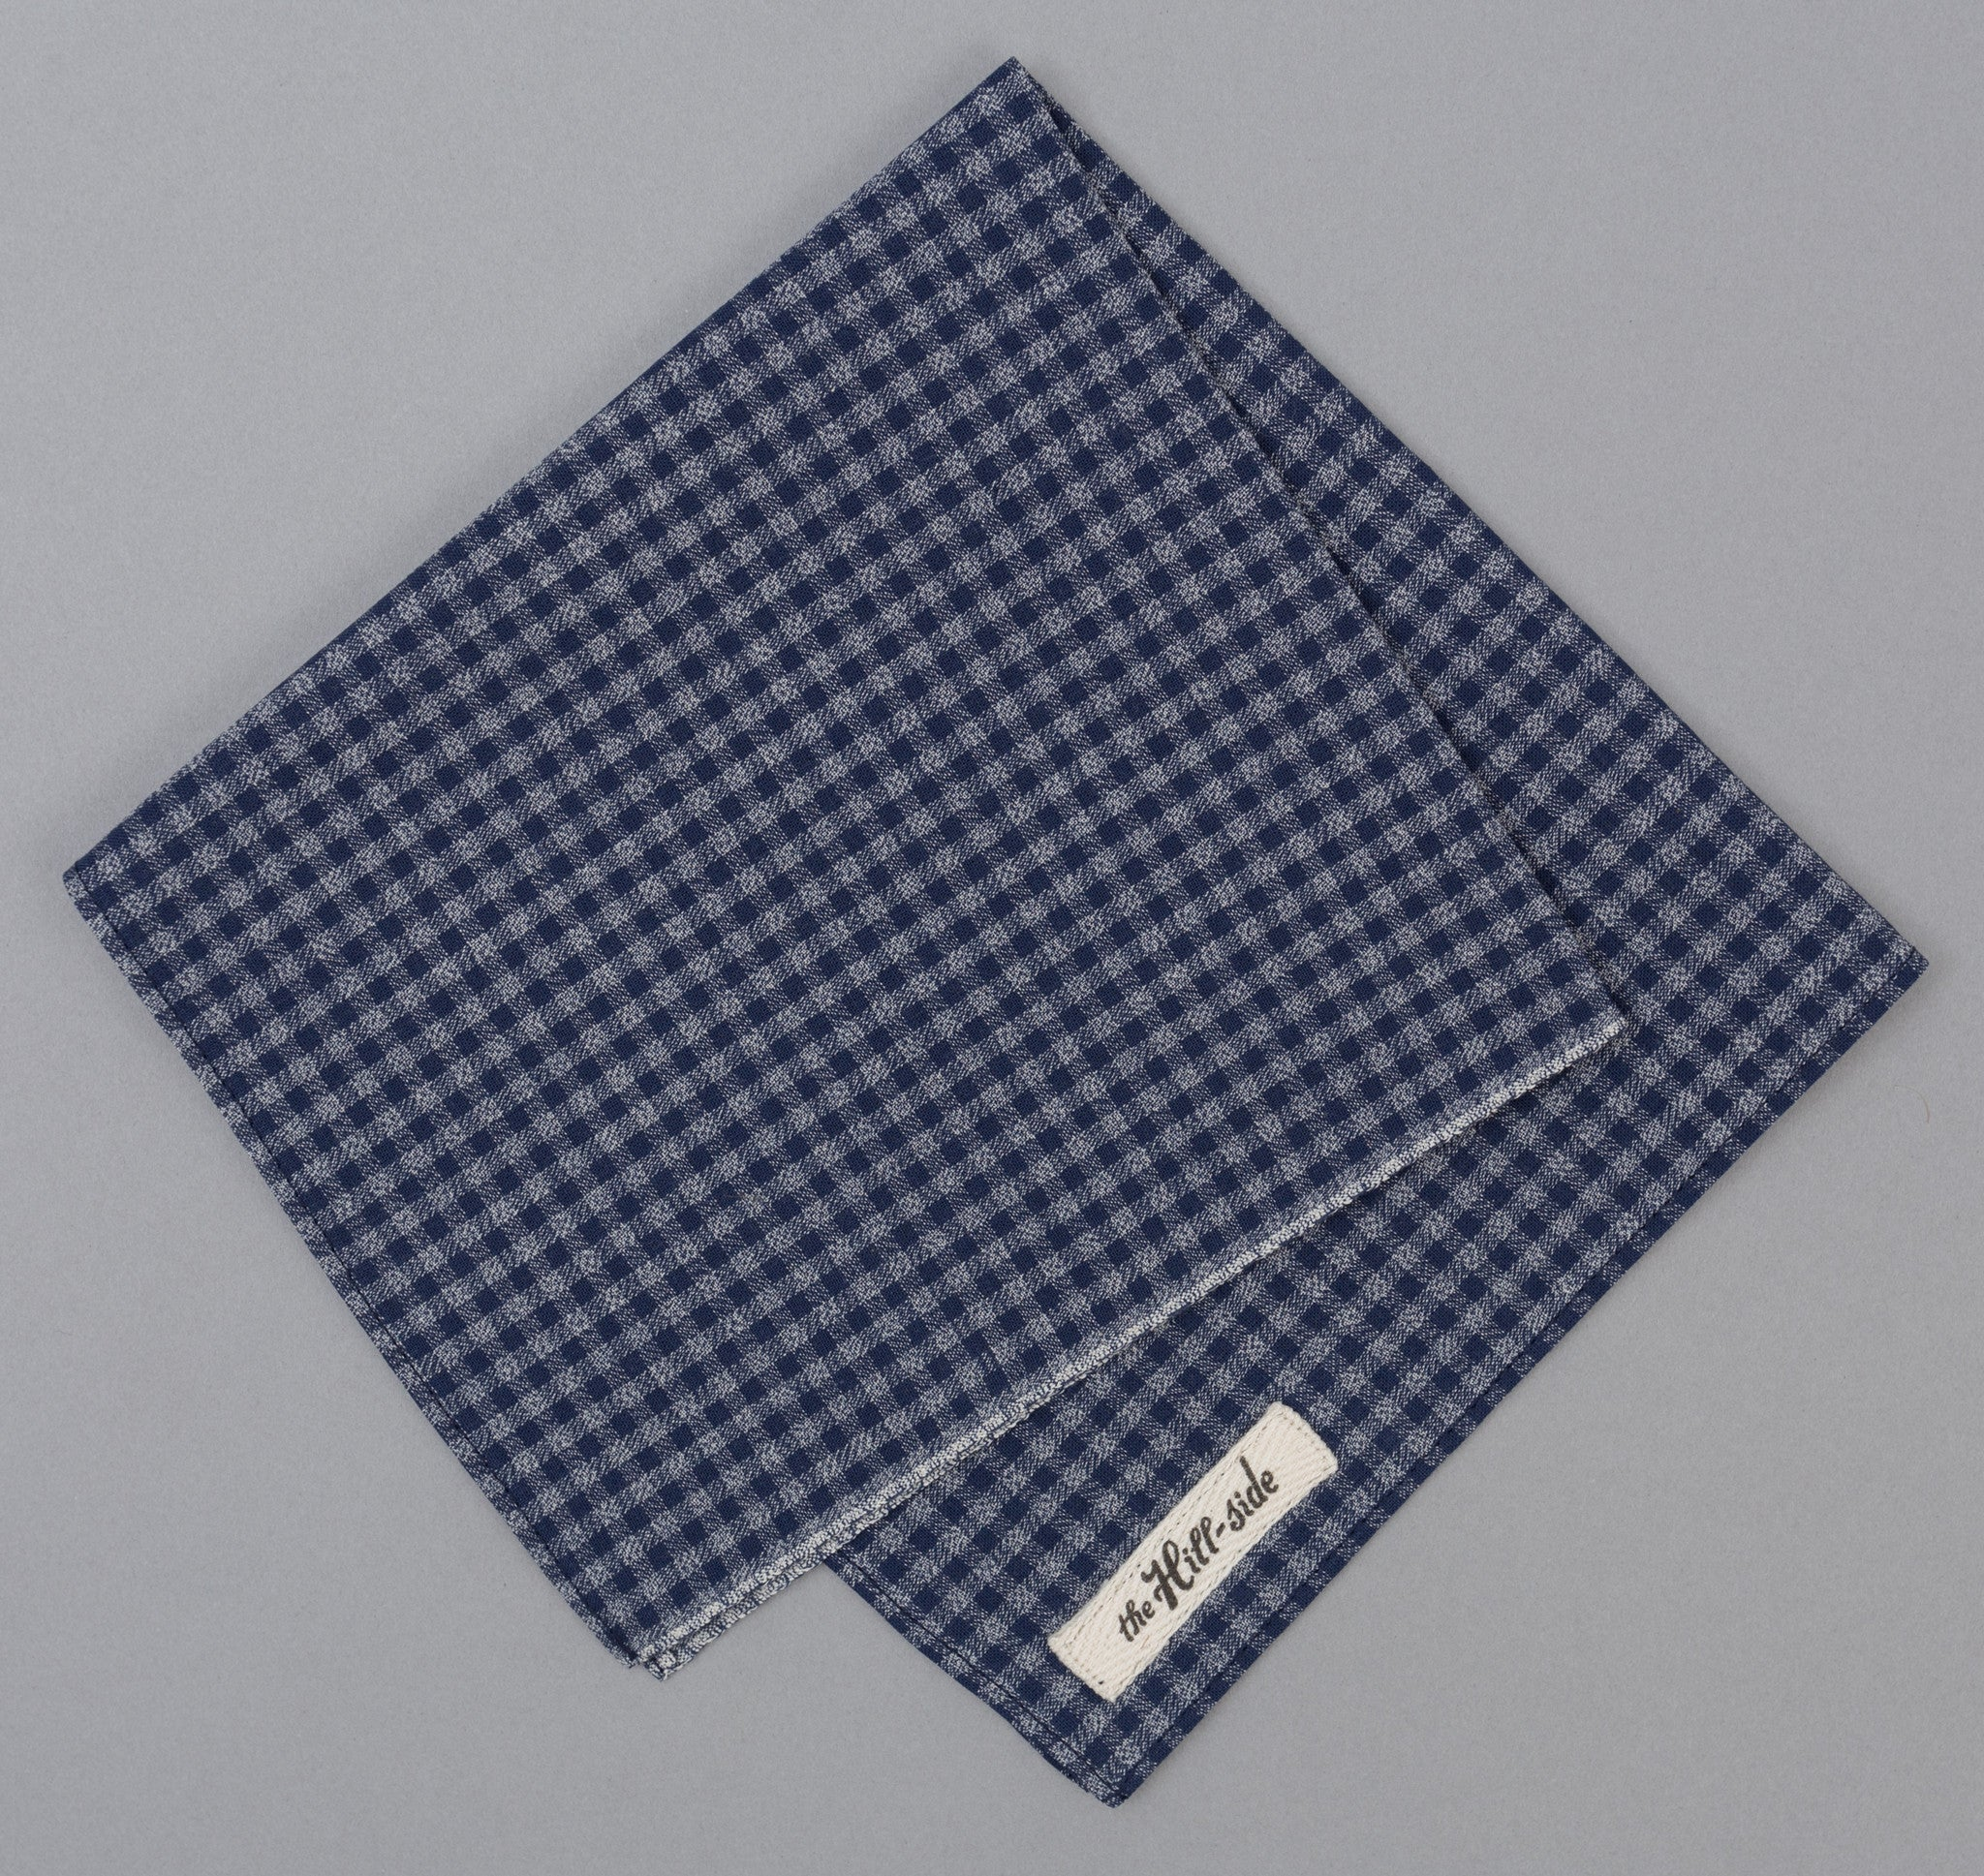 The Hill-Side - Selvedge Covert Gingham Chambray Bandana, Indigo / Indigo - BA1-330